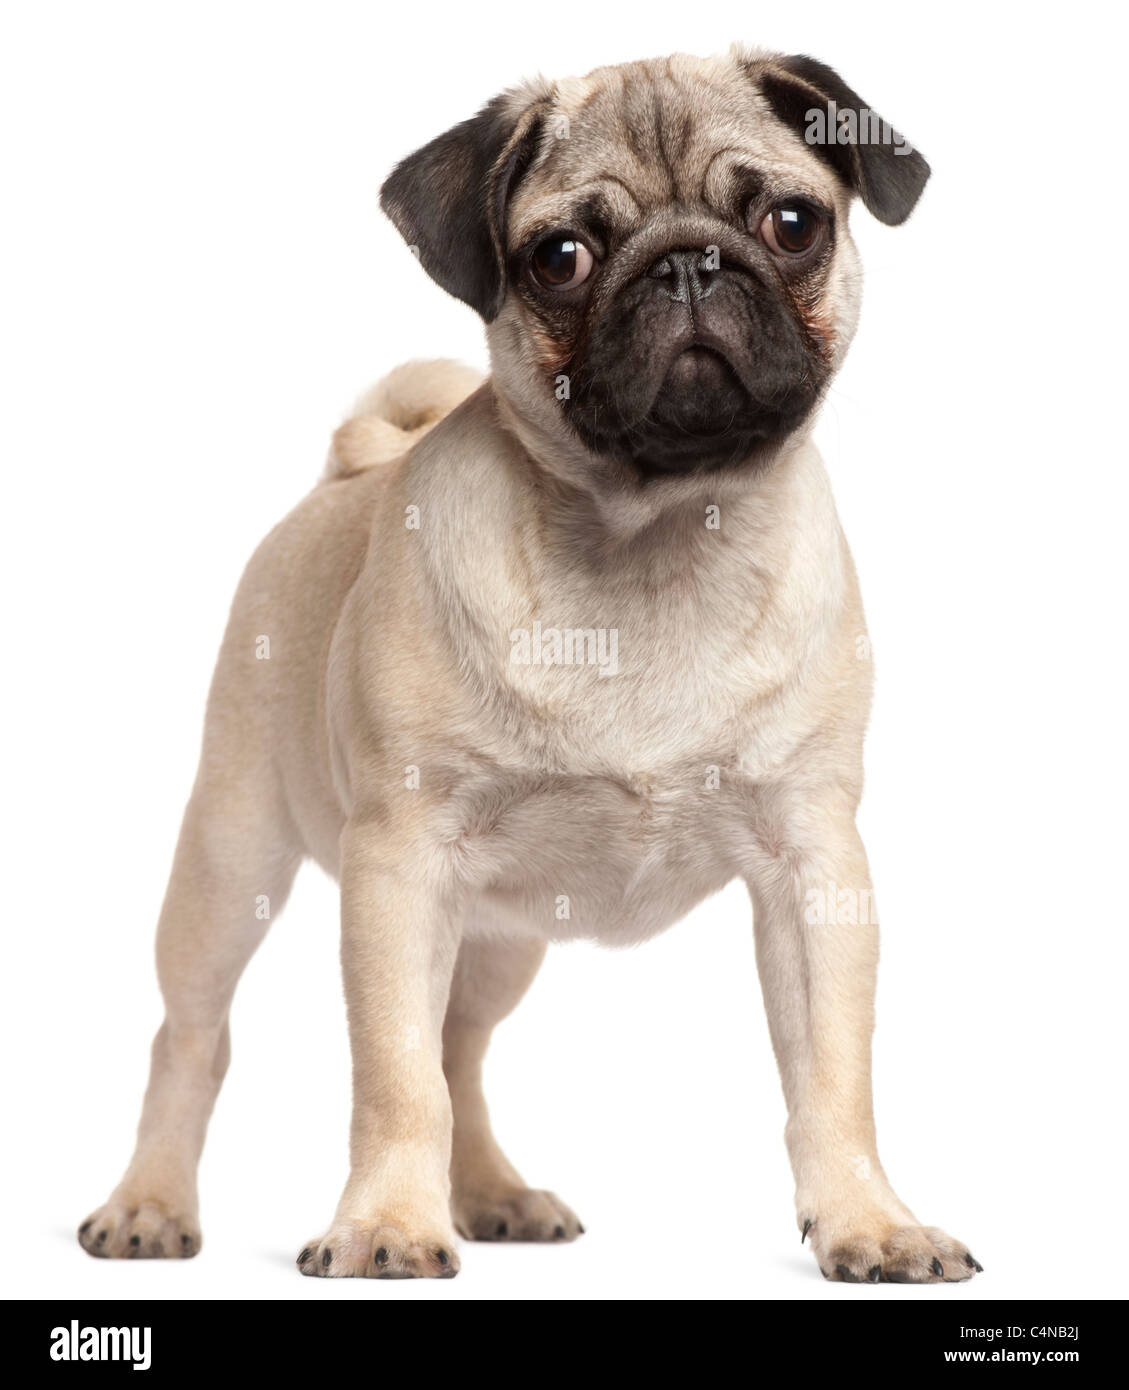 Pug puppy, 3 months old, standing in front of white background - Stock Image